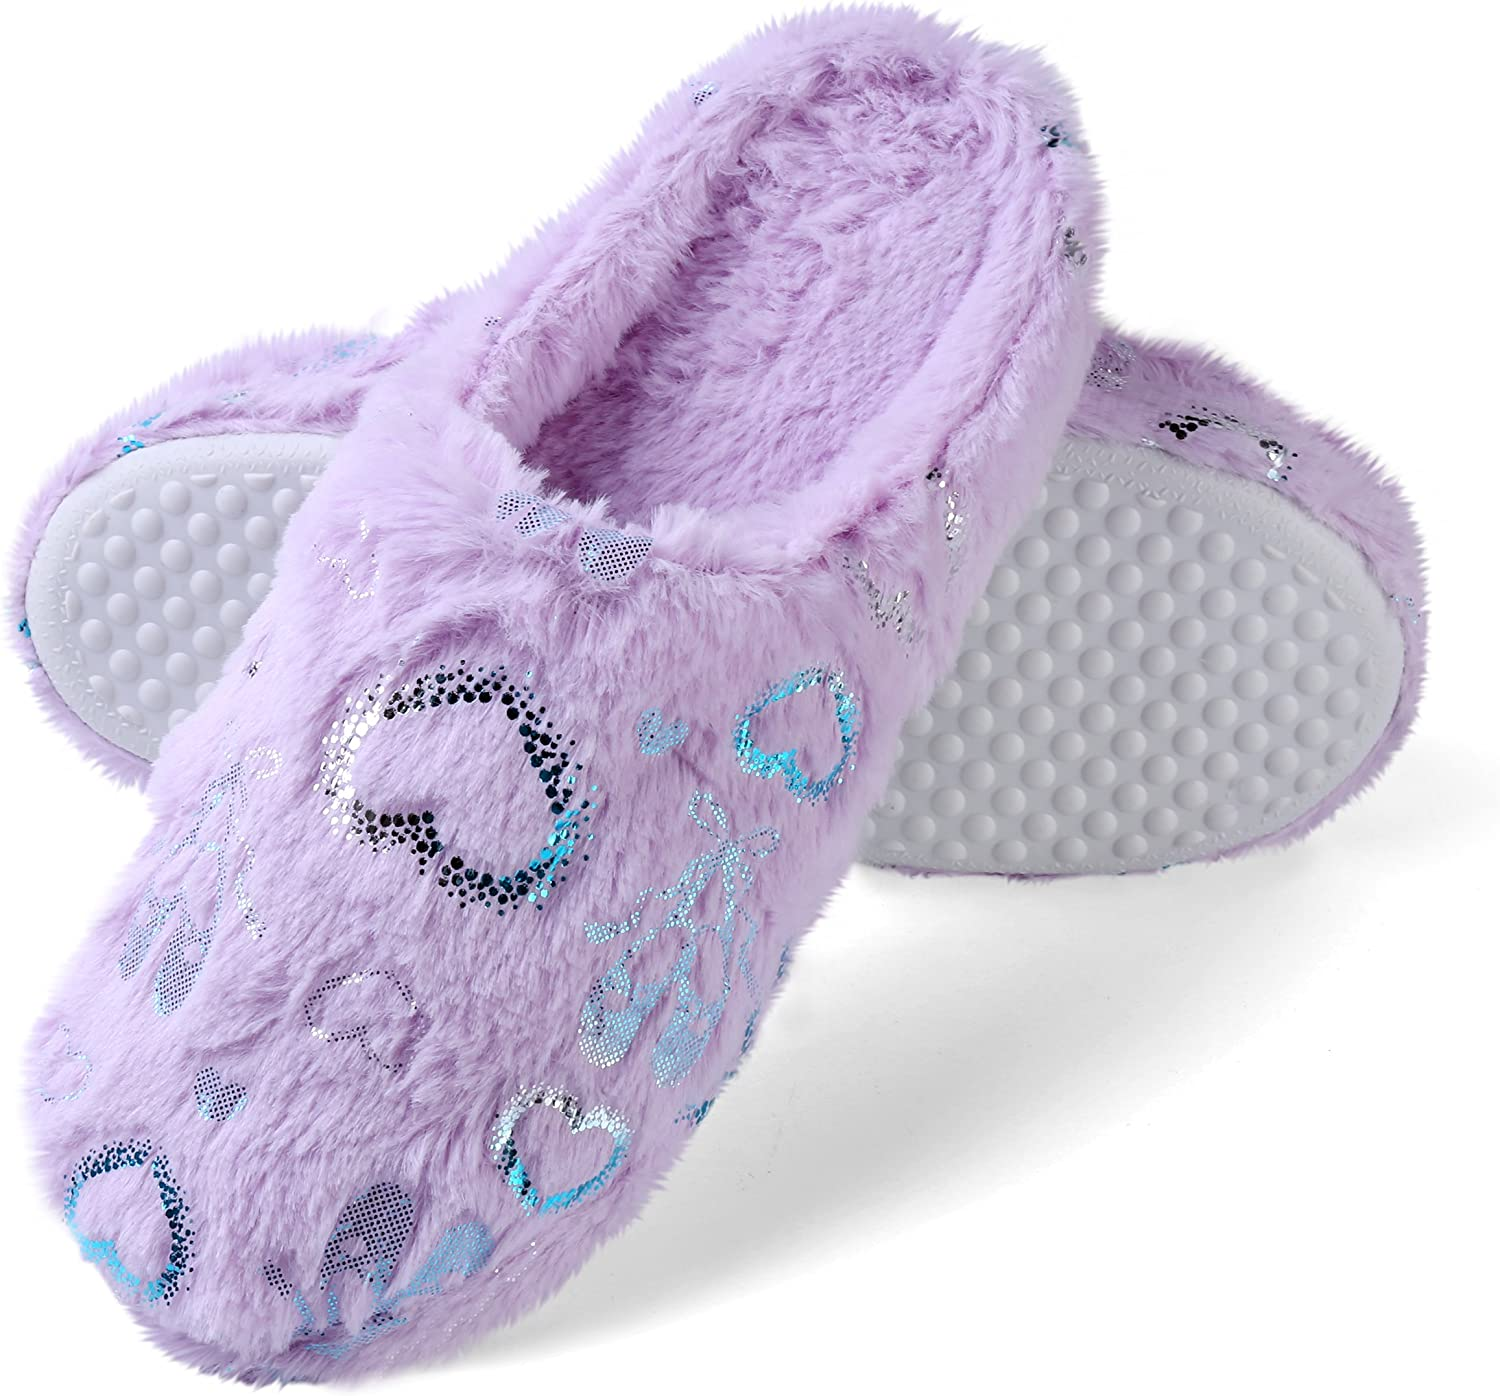 Aerusi Women's Cozy Fluffy Plush Fleece Clog Lined Popular shop is the lowest Topics on TV price challenge Scuff Slip on